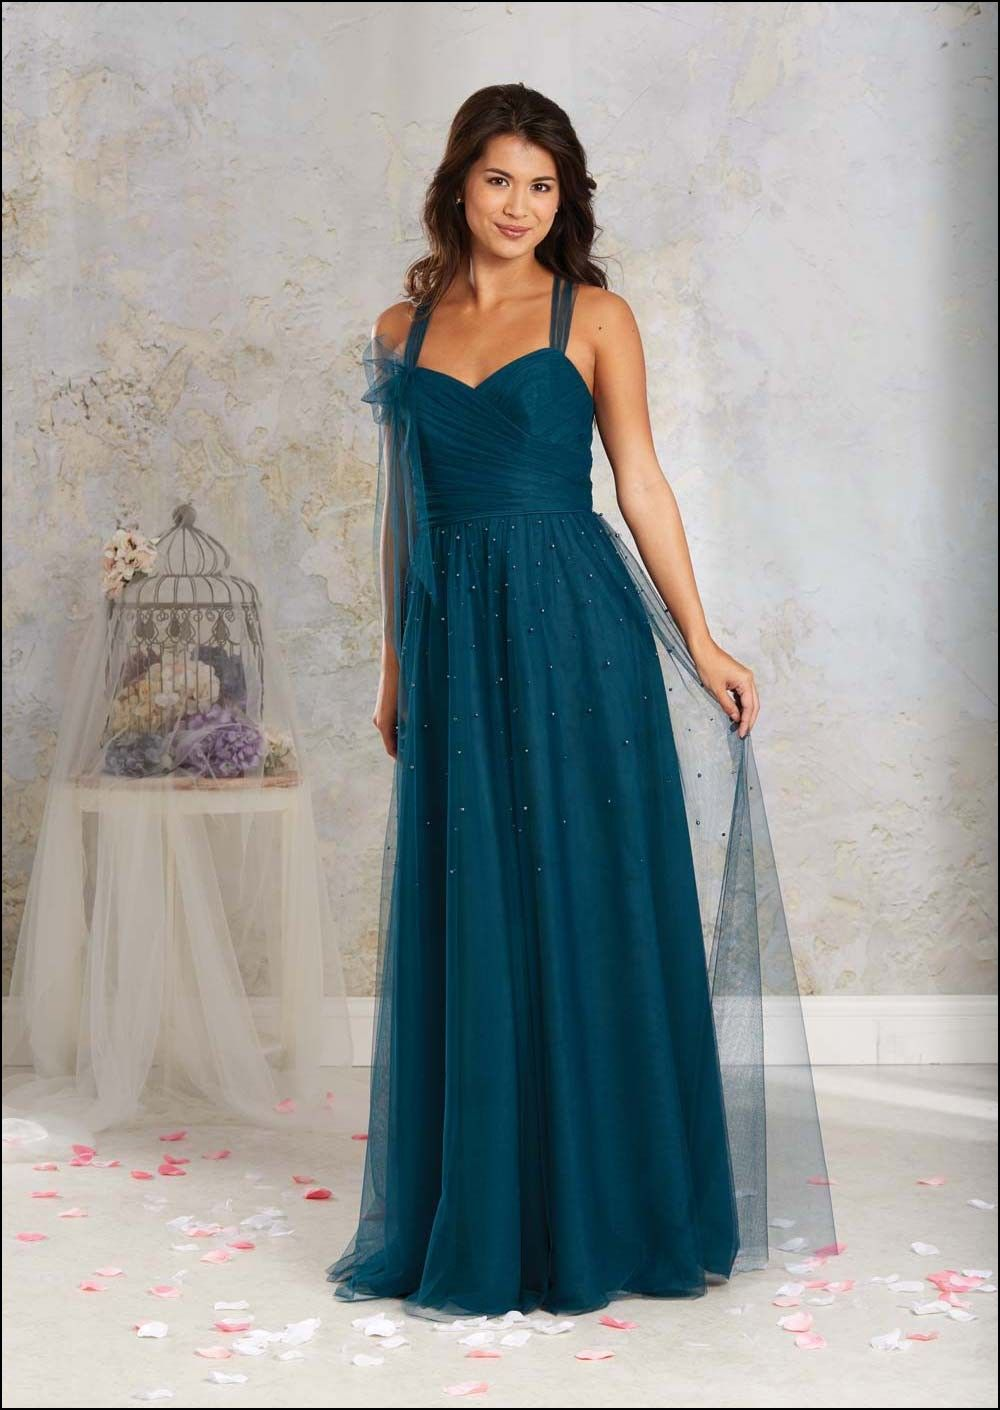 Alfred angelo teal bridesmaid dress dresses and gowns ideas alfred angelo teal bridesmaid dress ombrellifo Choice Image